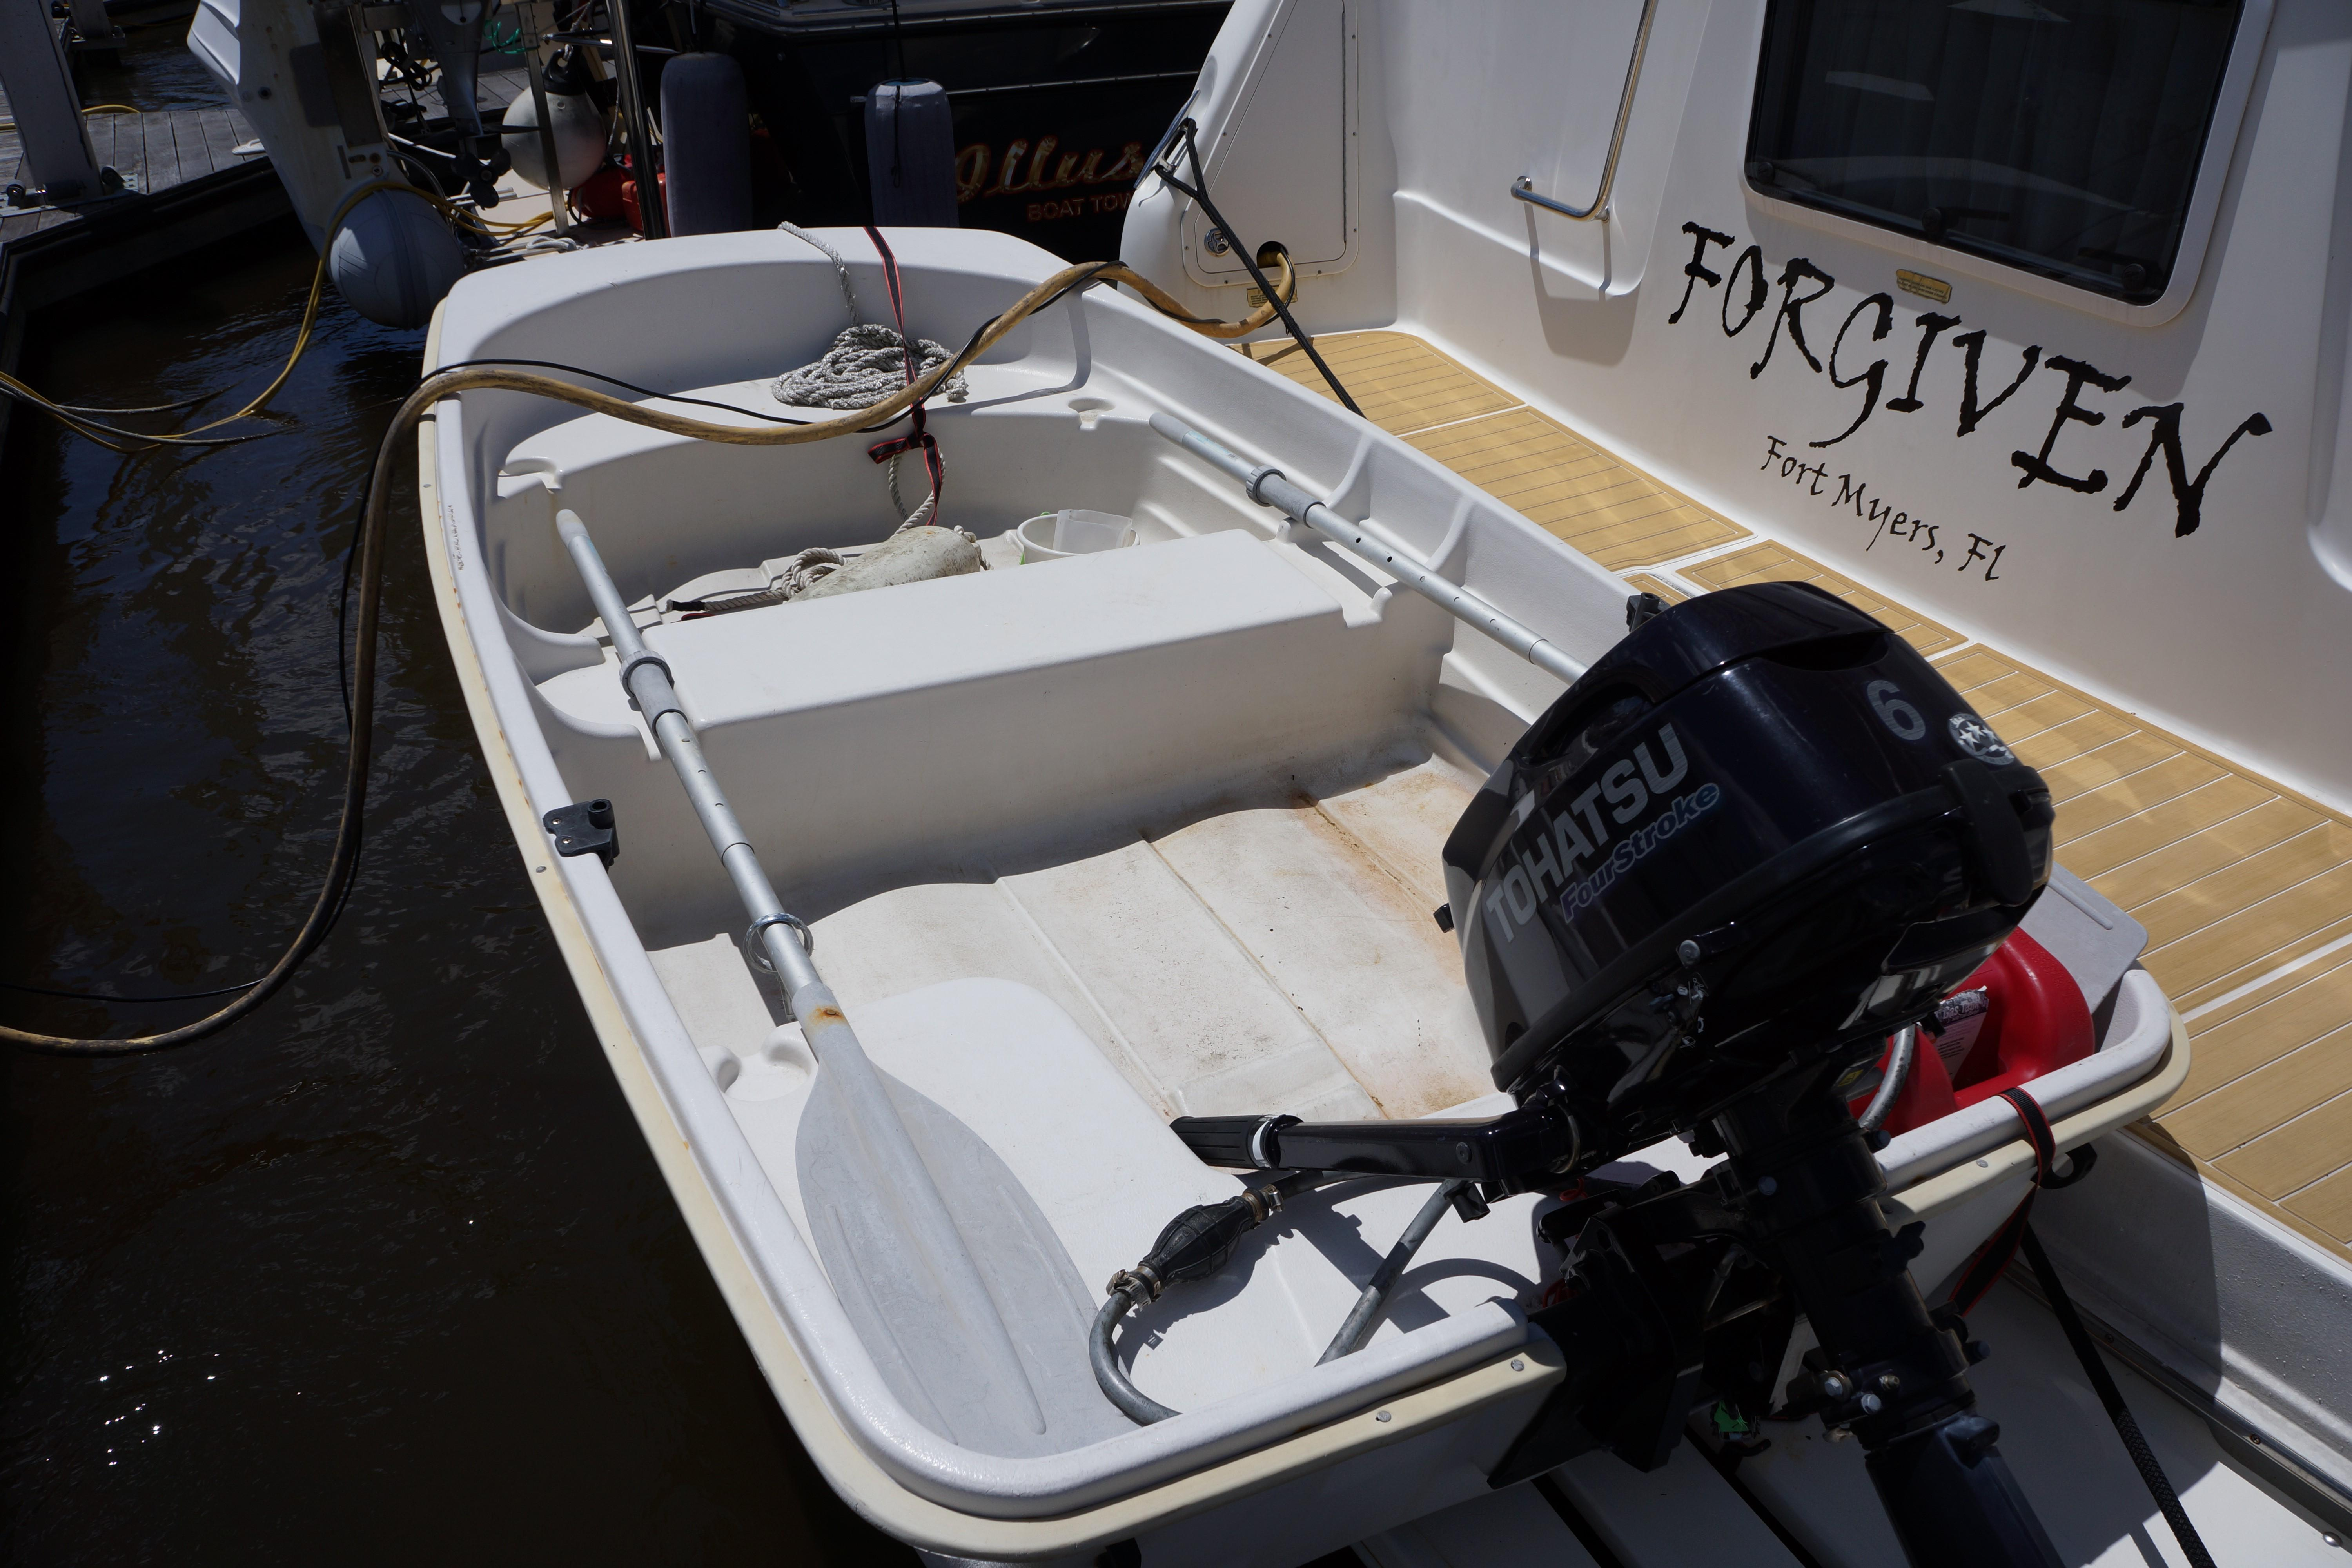 Sea Ray 370 Aft Cabin - 10 foot Sun Dolphin tender and outboard